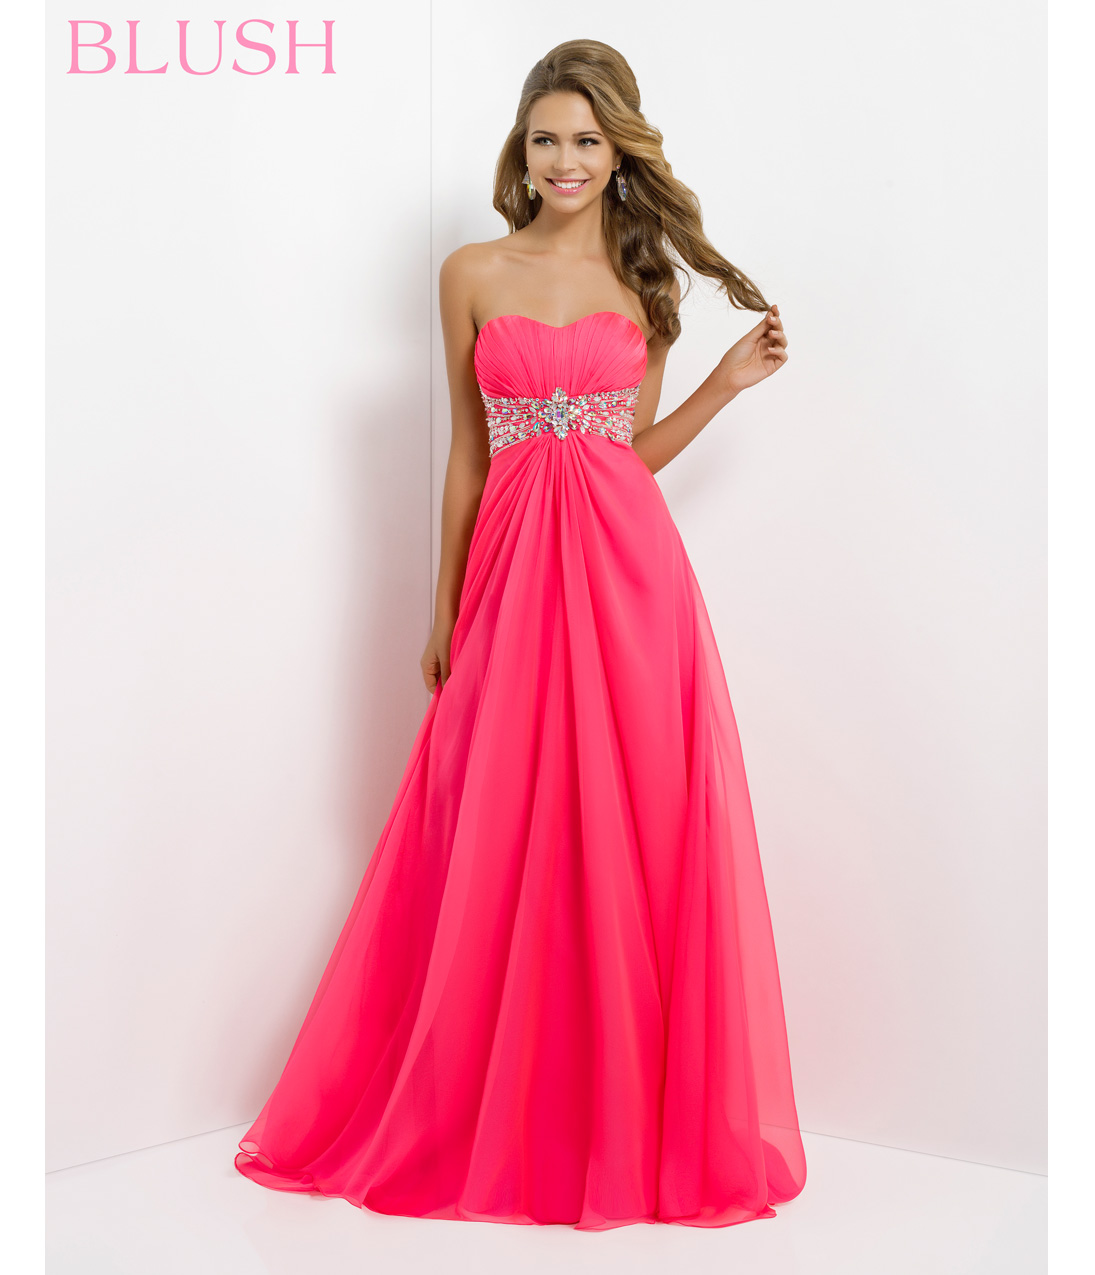 Blush 2014 prom dresses barbie pink from unique vintage for Pink homecoming dresses